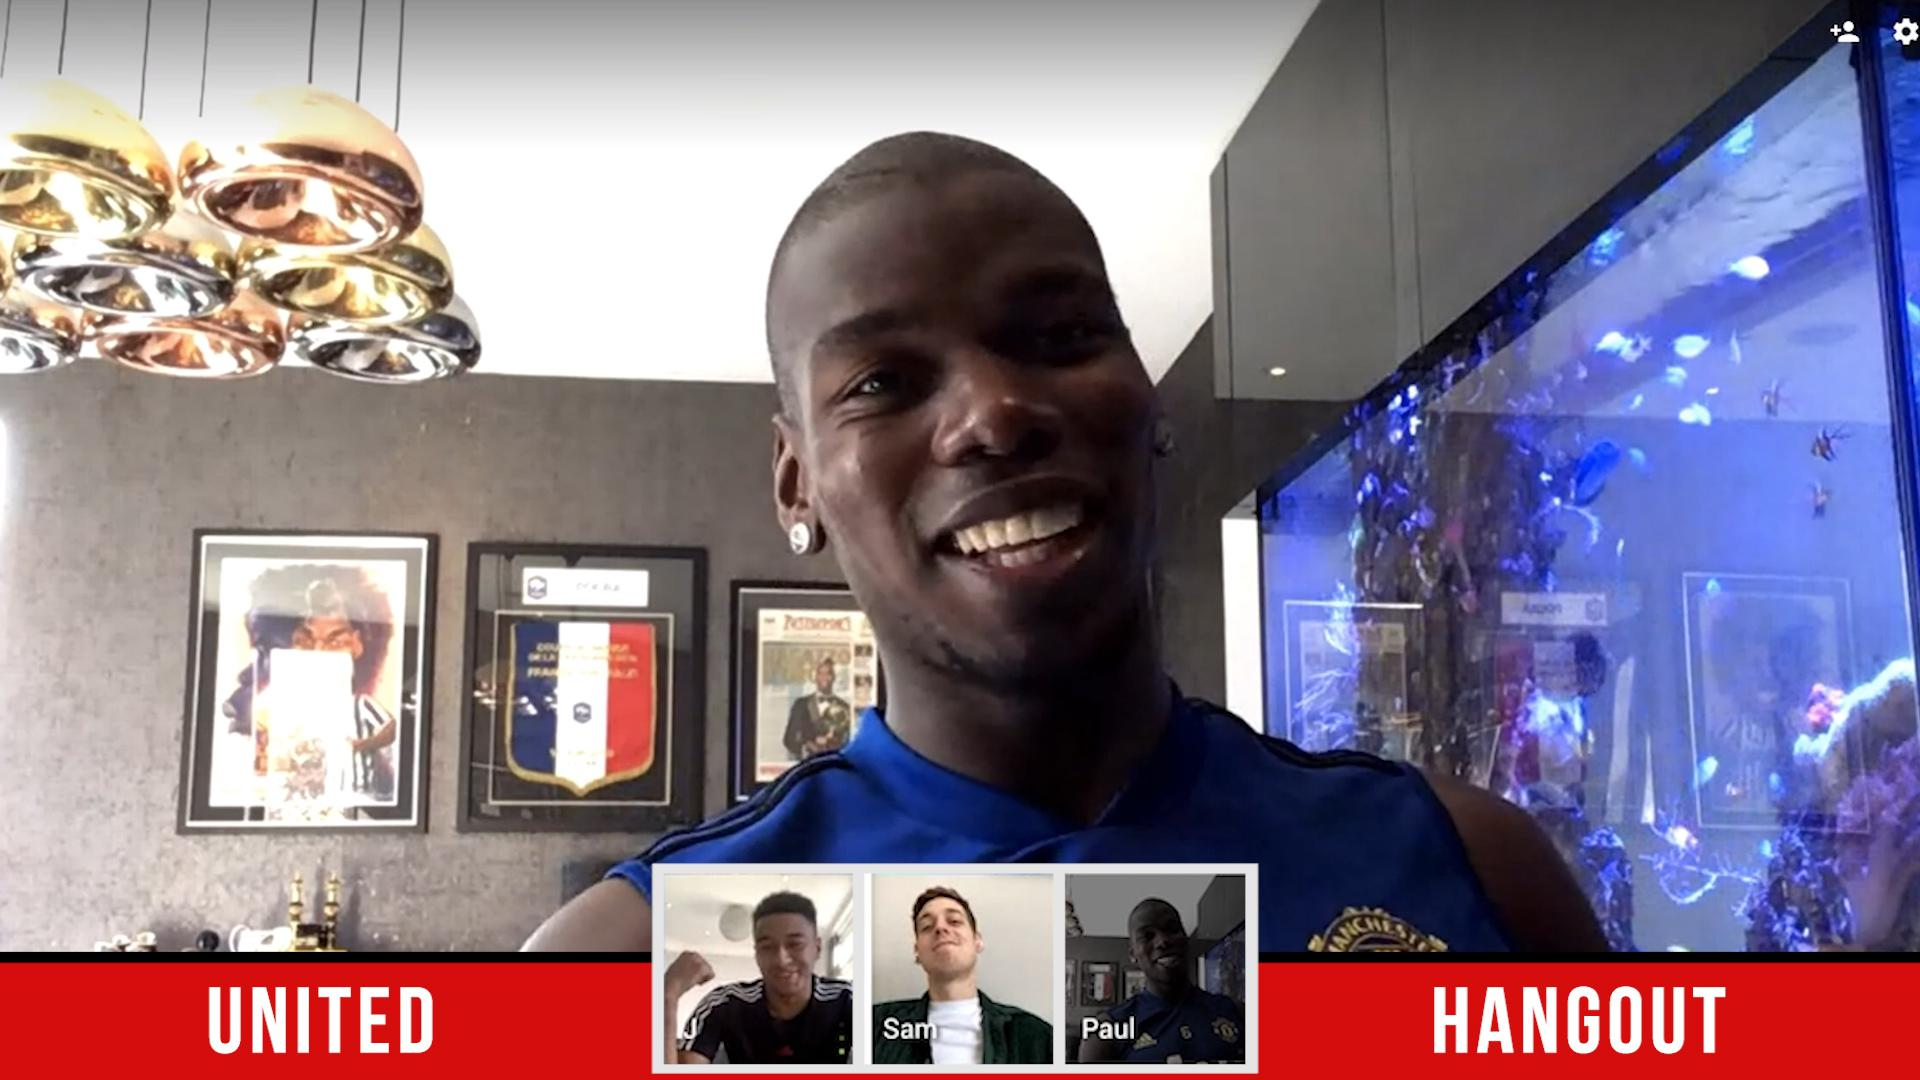 Paul Pogba takes part in a United Hangout video chat,